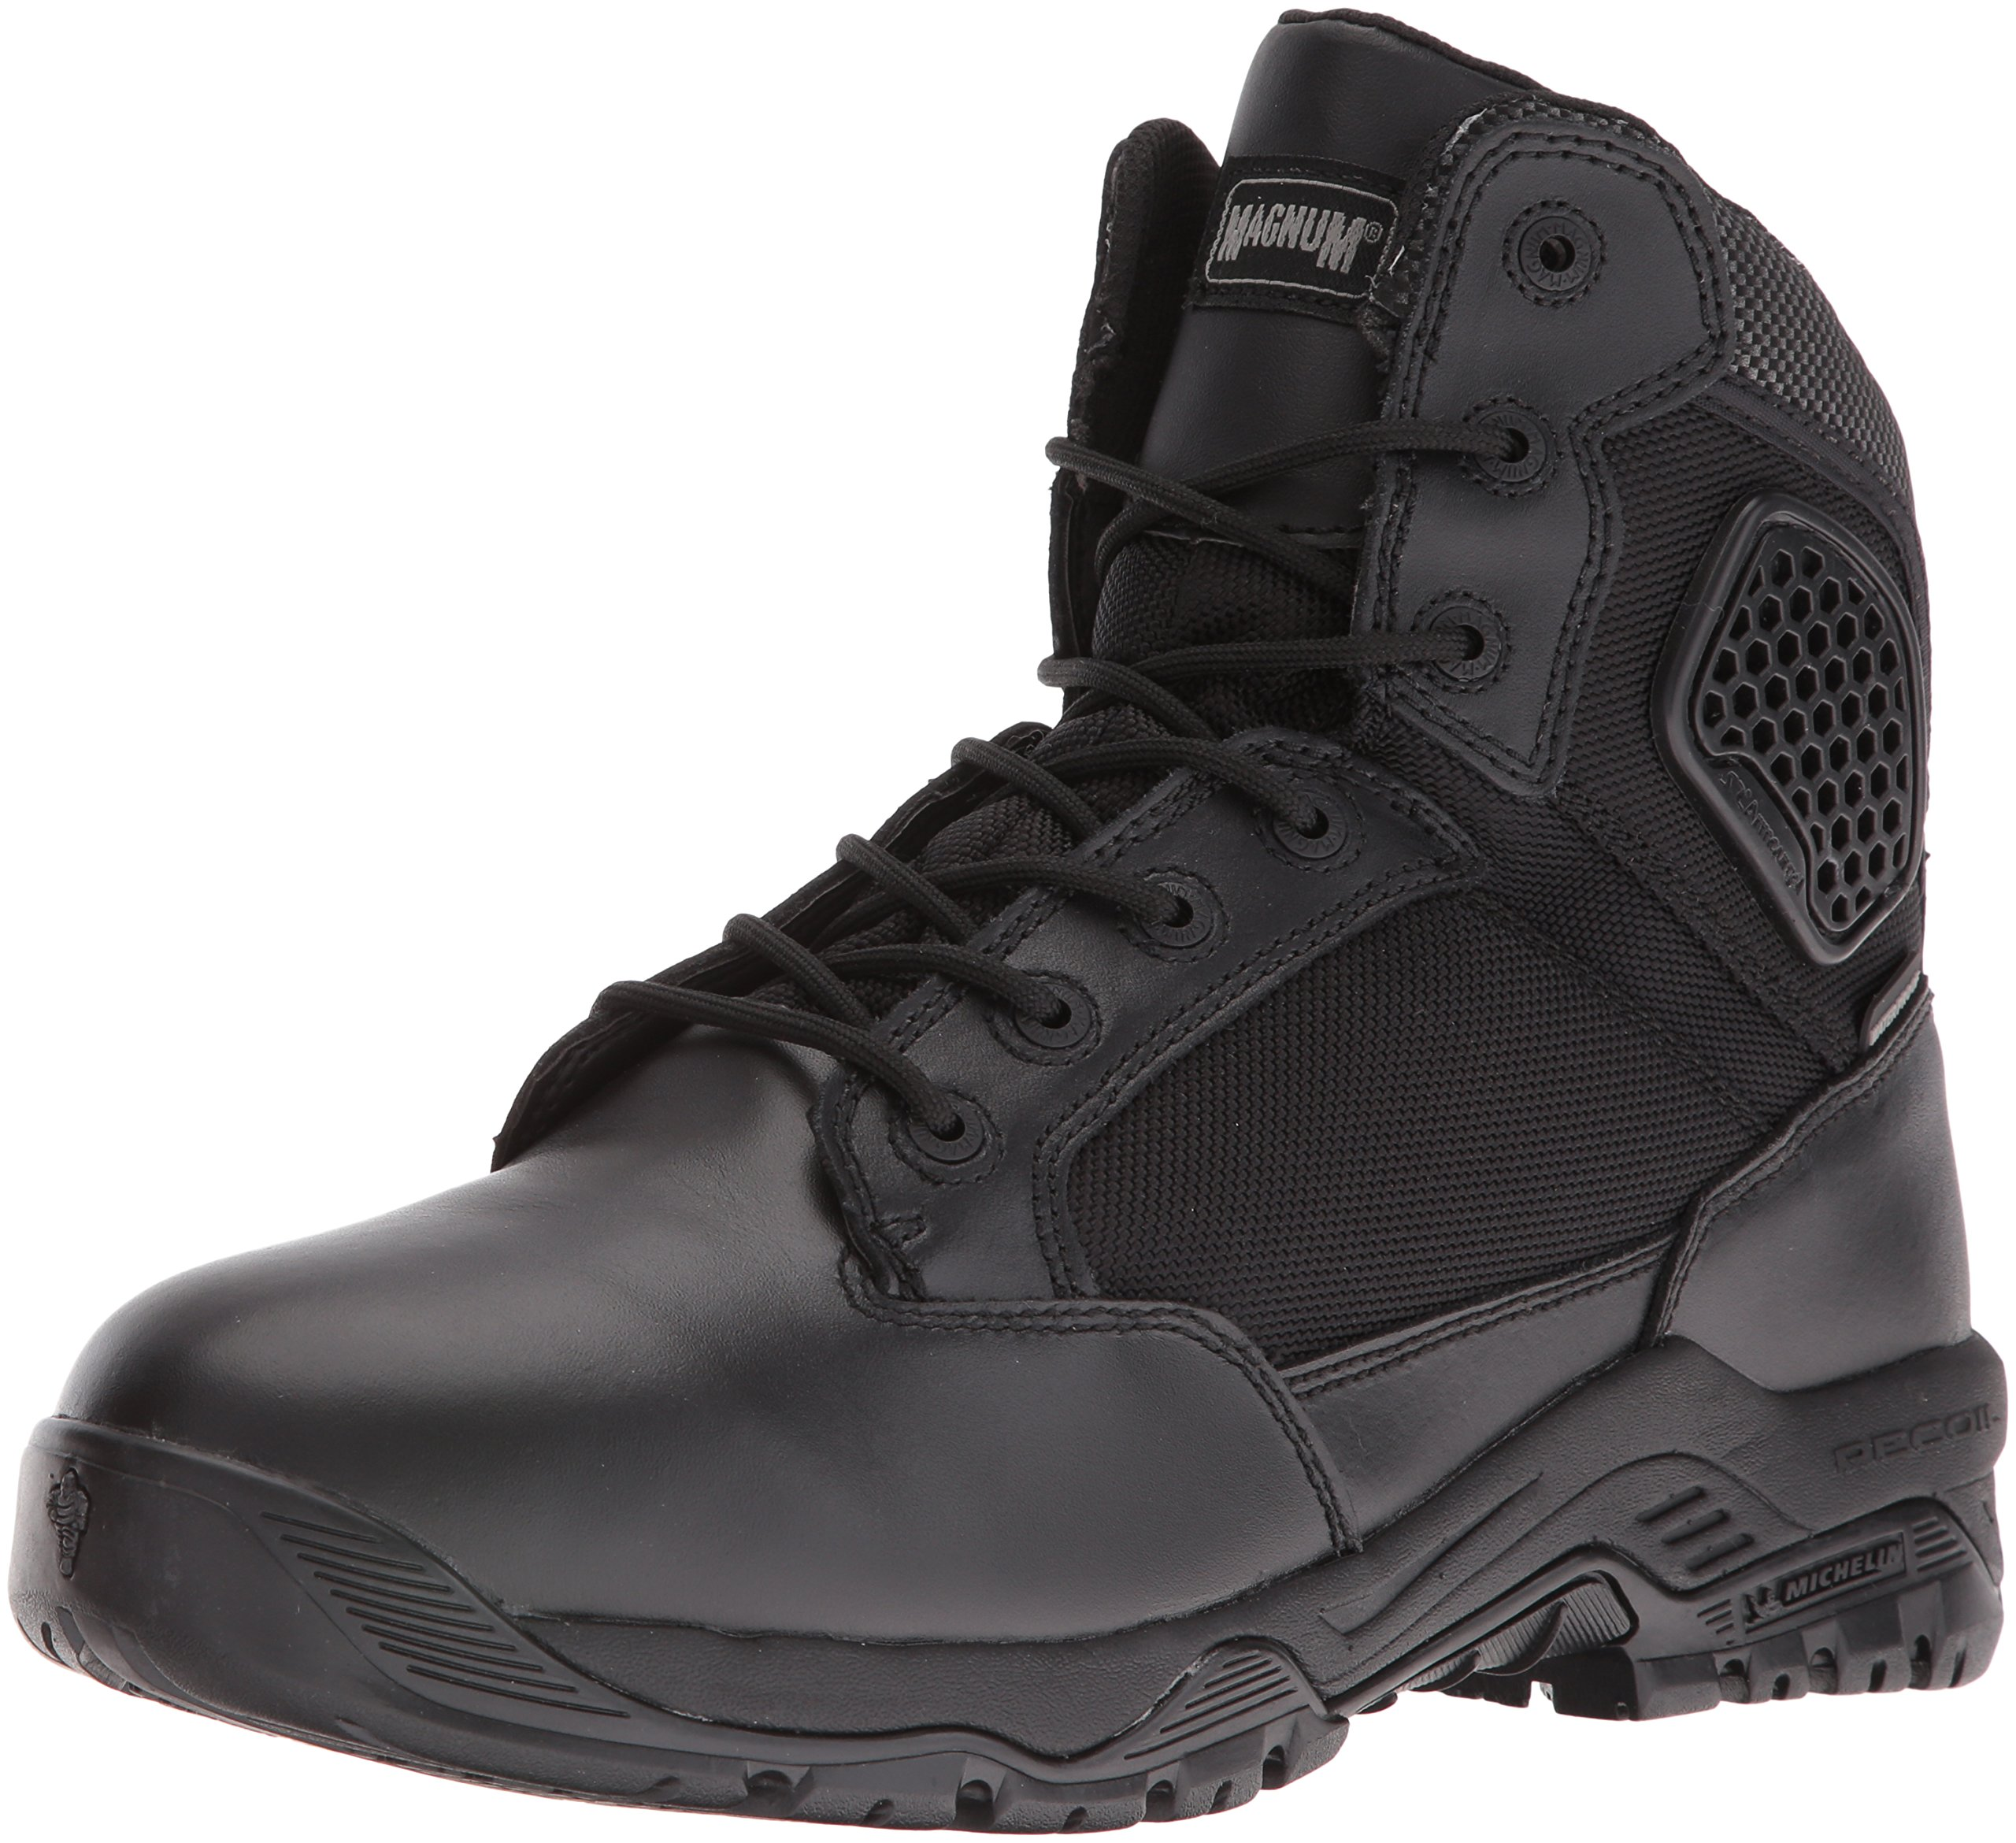 Magnum Men's Strike Force 6'' Waterproof Military & Tactical Boot, Black 14 W US by Magnum (Image #1)